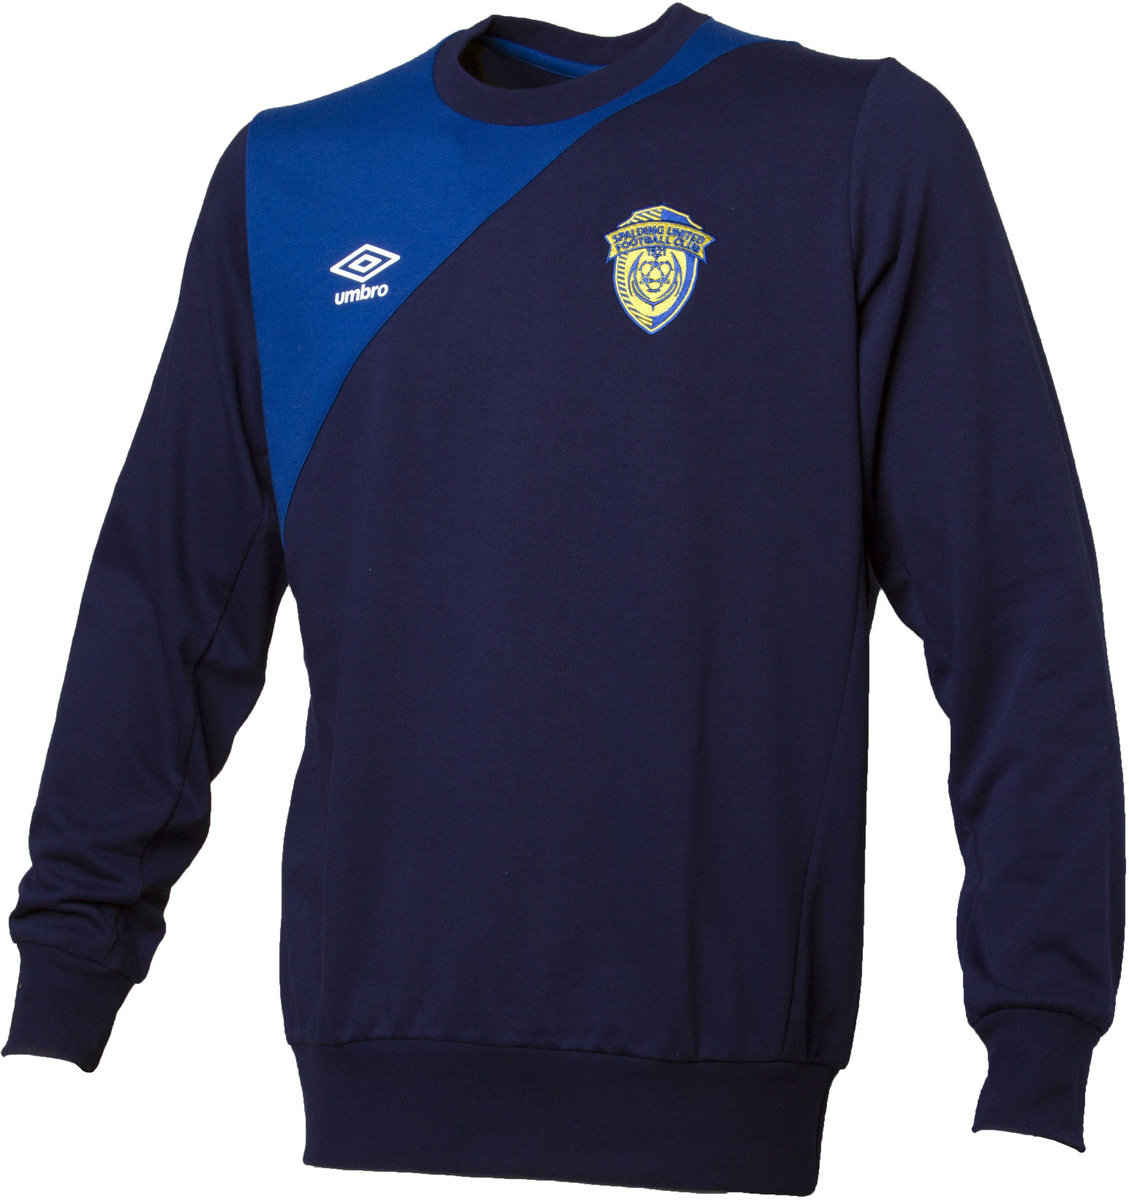 SPALDING UTD 16/17 JUNIOR TRAINING SWEAT